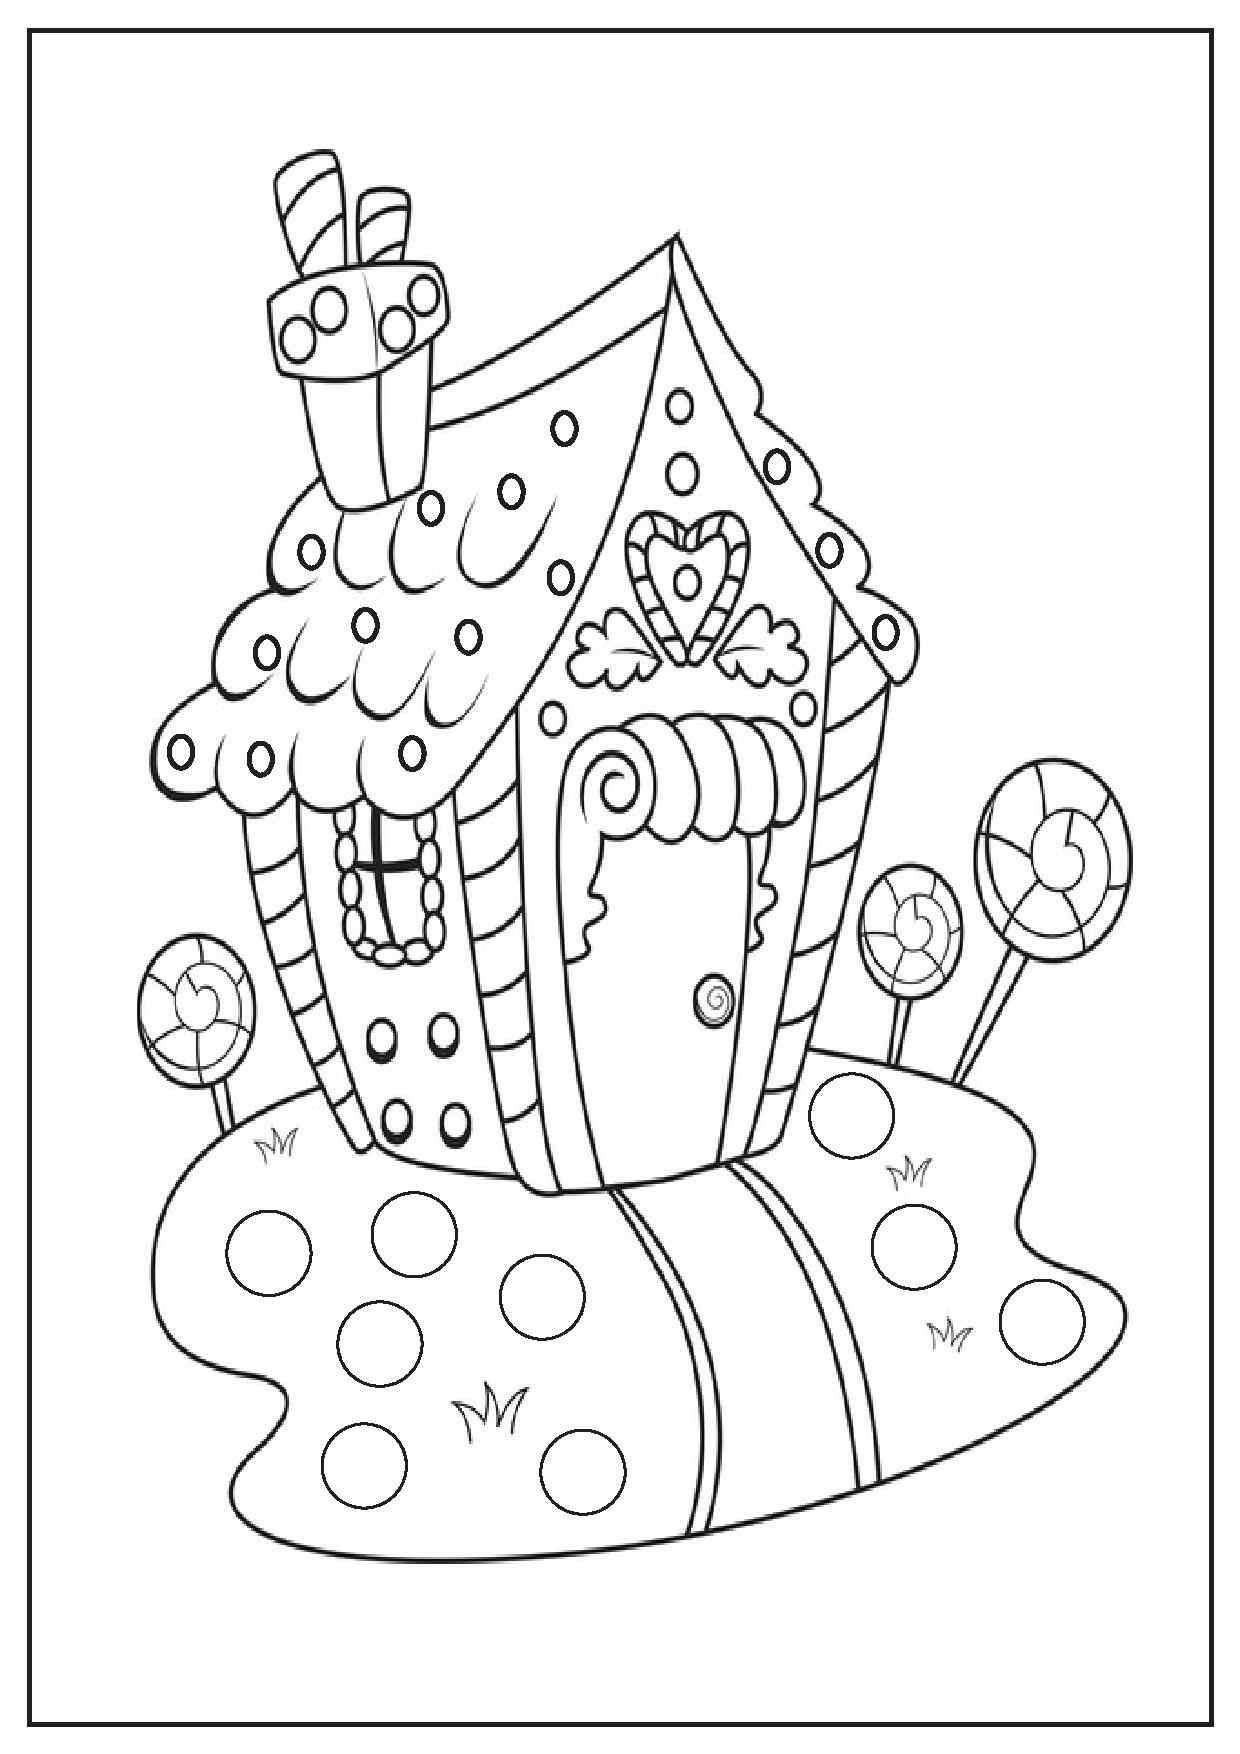 Free coloring pages for christmas printable - Christmas Worksheets Christmas Coloring Pages Printables